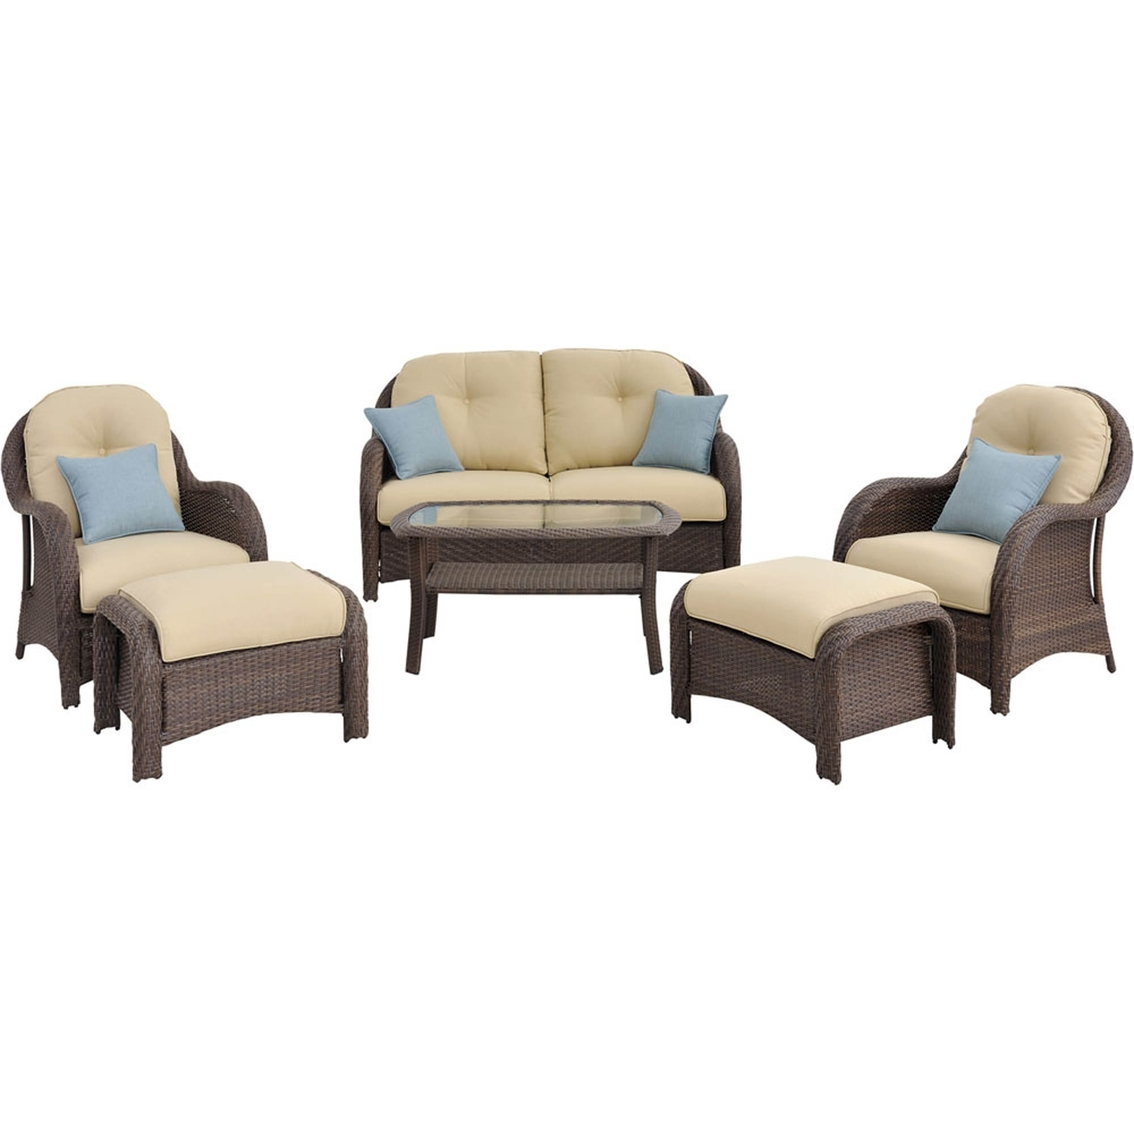 Hanover Outdoor Furniture Newport Wicker 6 Pc Deep Seating Patio